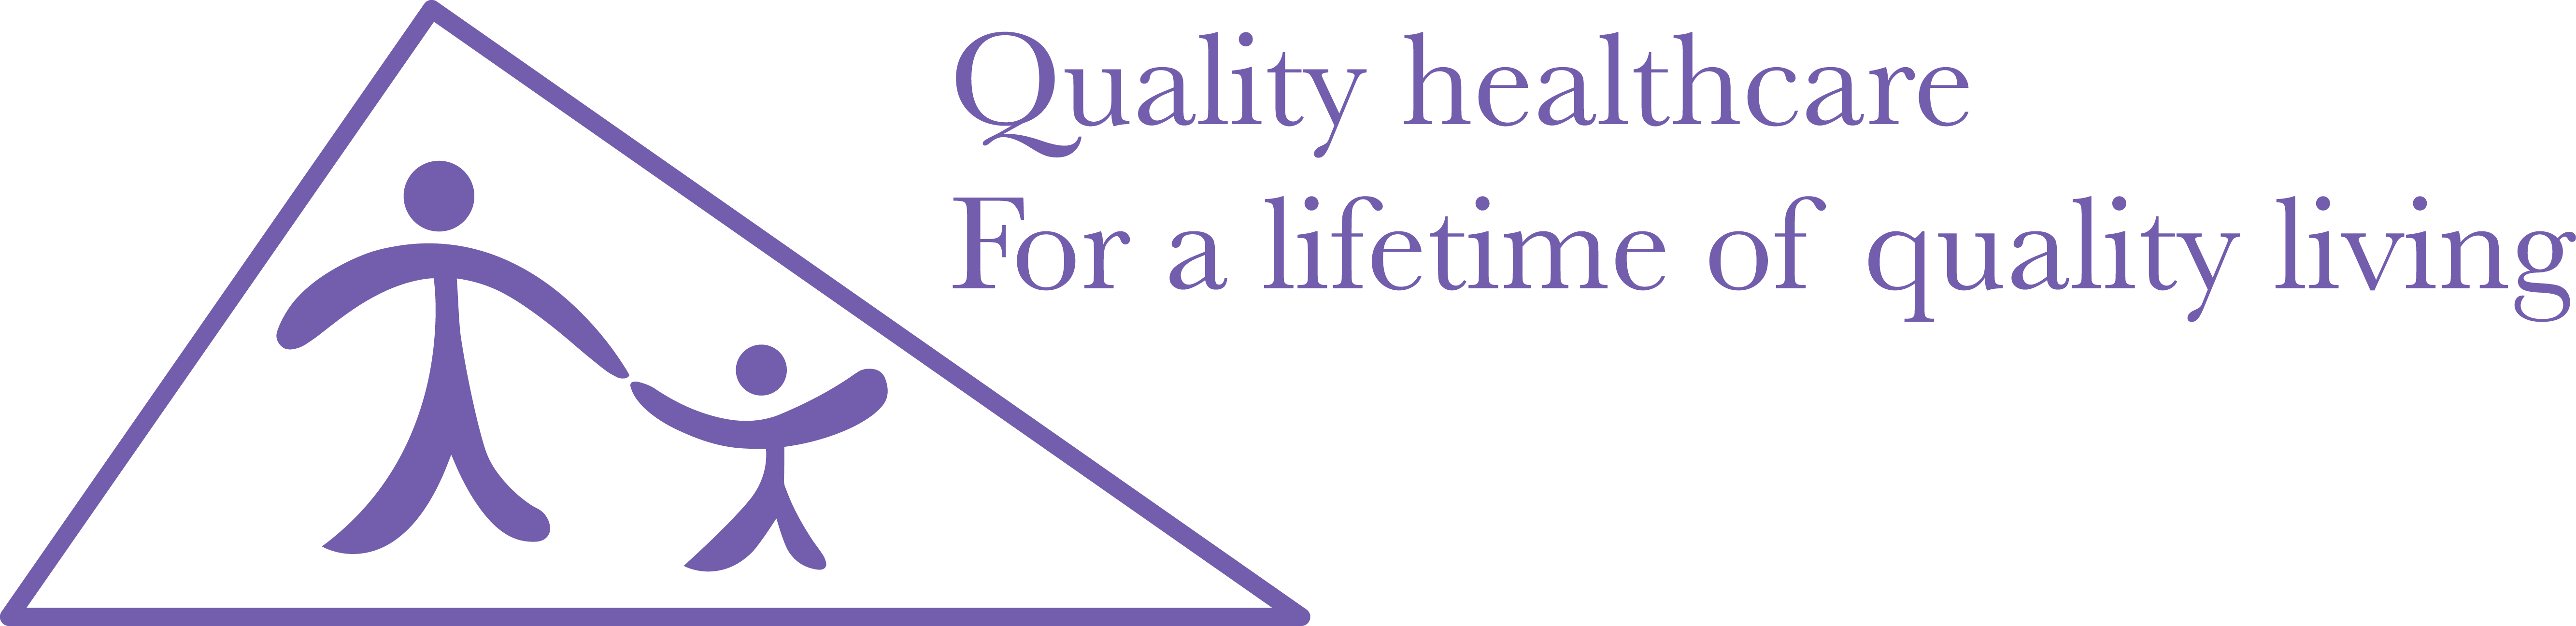 Triangle Family Care - family medical practice in Cary, NC